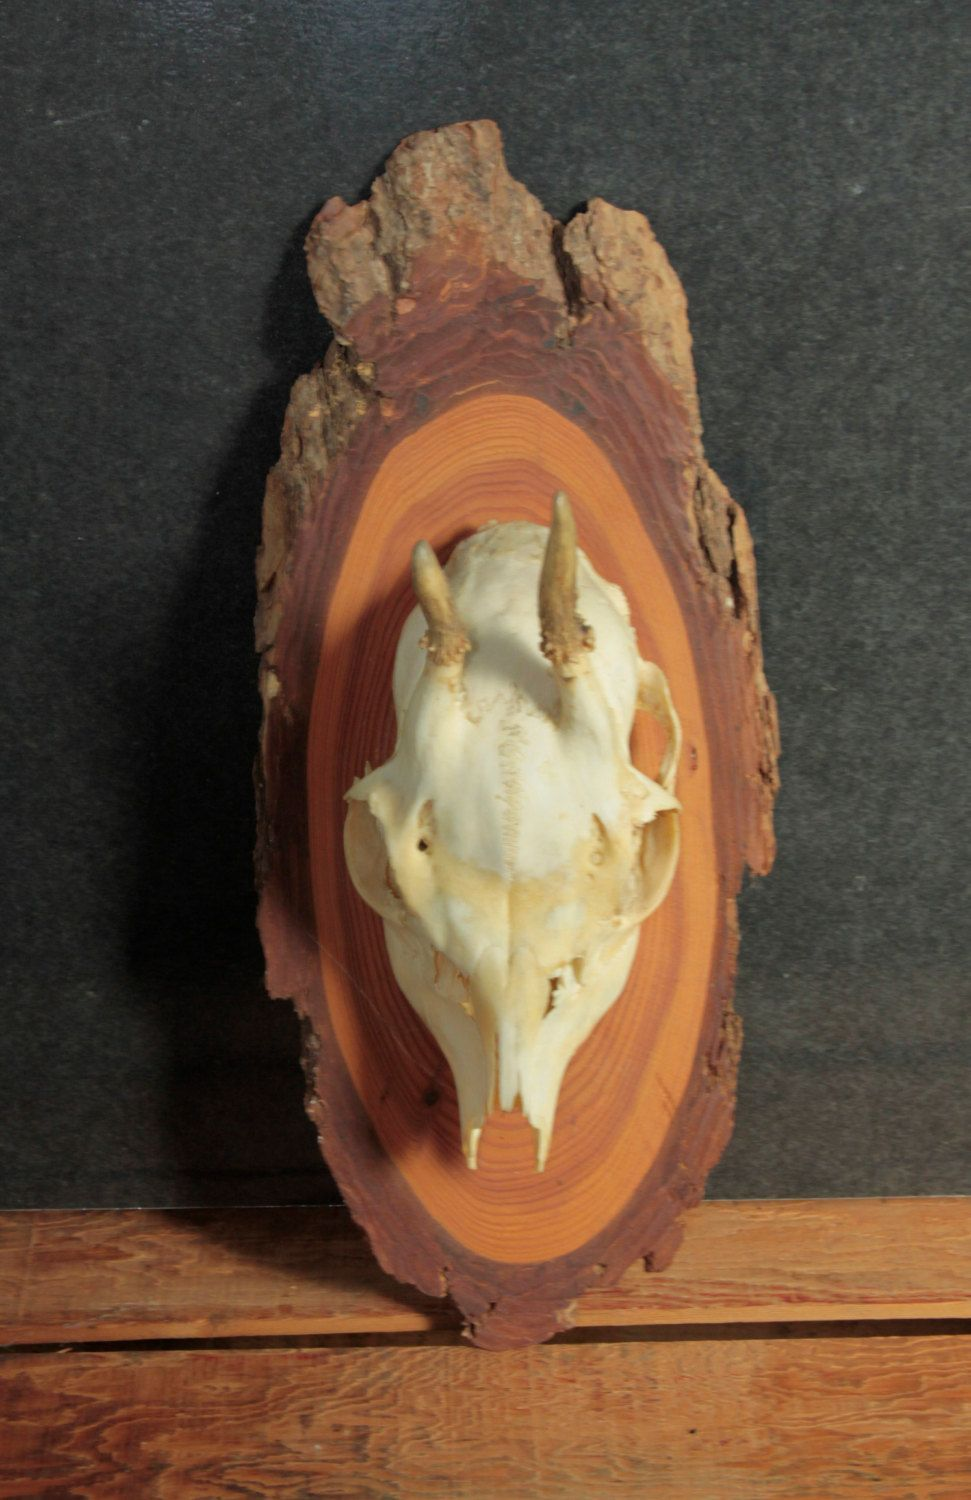 Mounted Skull with Horns, Unusual Small Skull Mounted on Wood Slice, Vintage Wall Decor, Rustic Wall Decor by Fleaosophy on Etsy